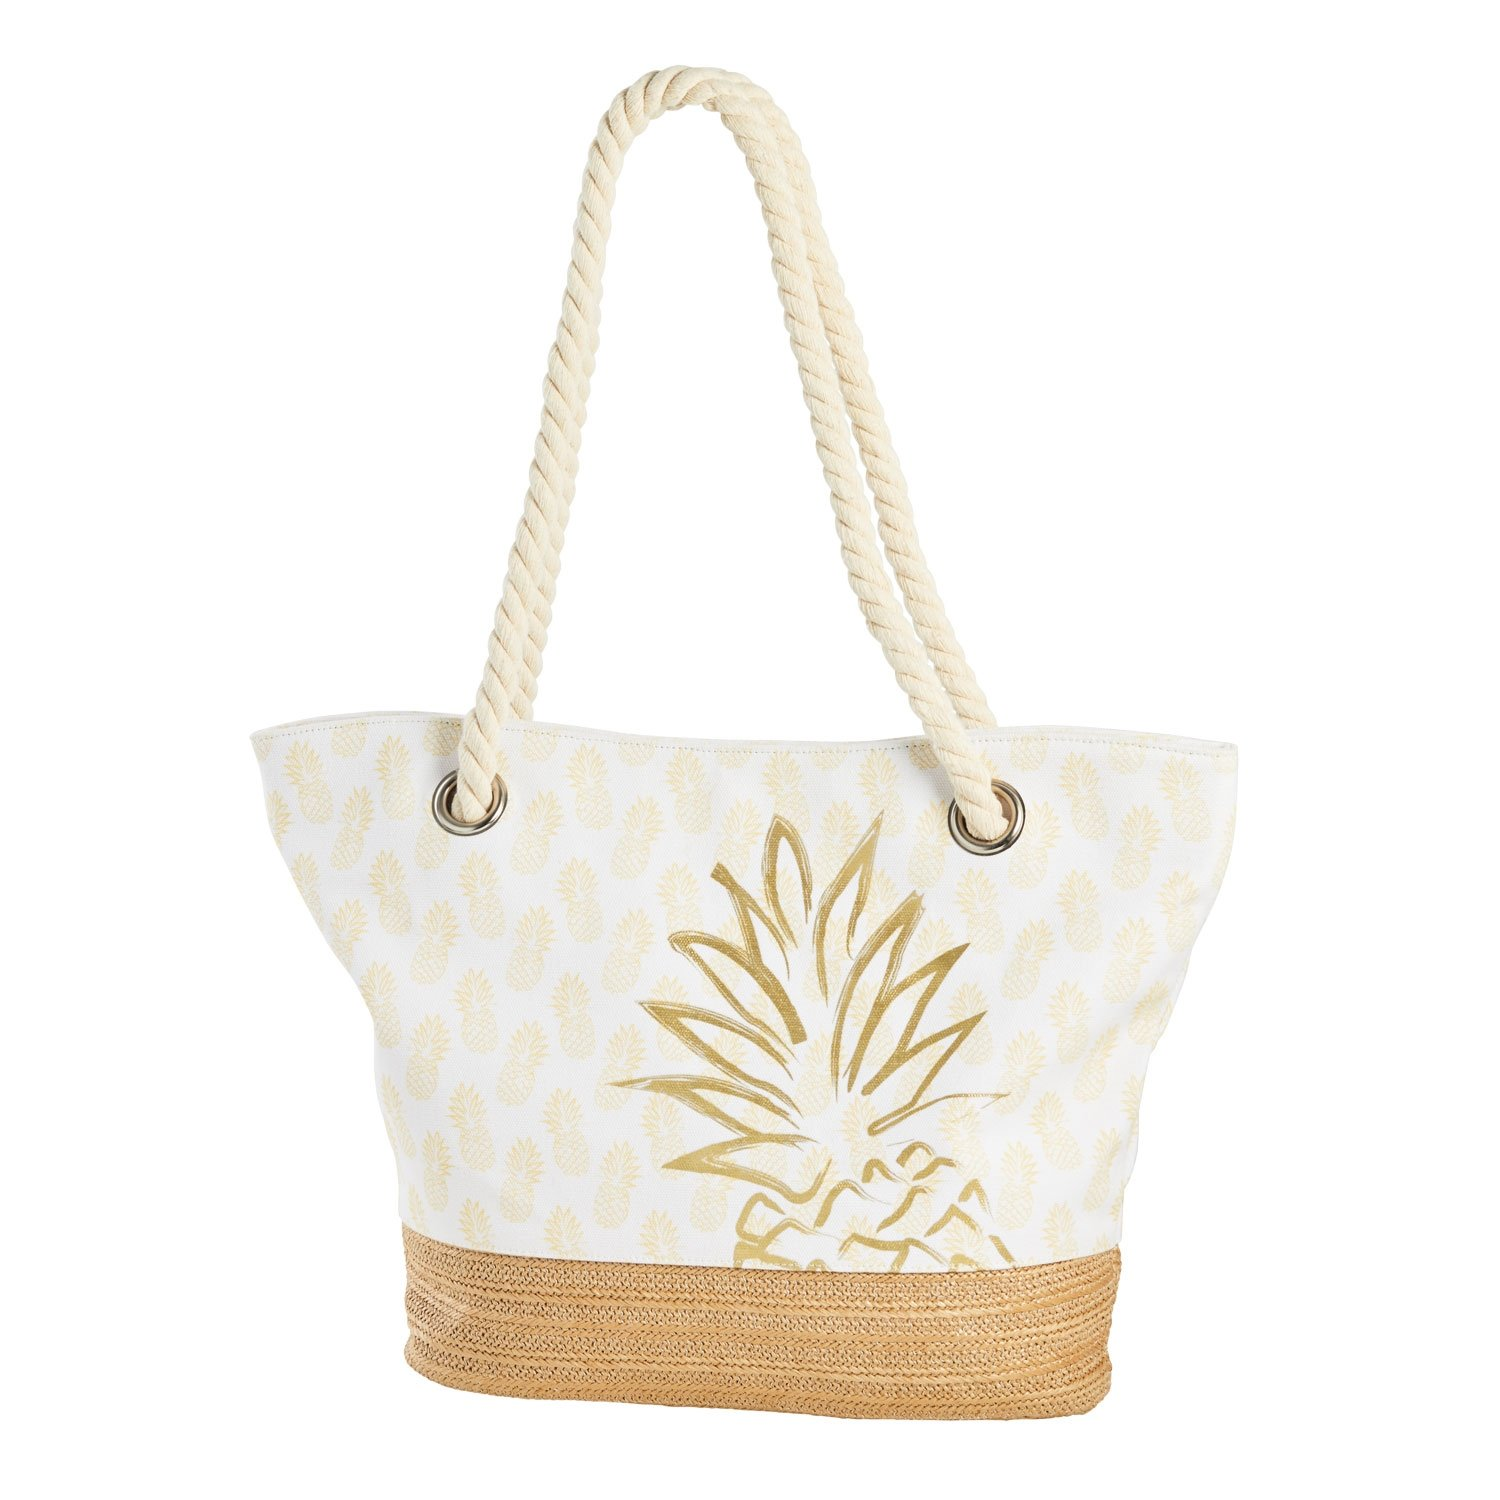 Beachcombers Pineapple White Gold Cotton Rayon Tote Bag Apparel Accessories